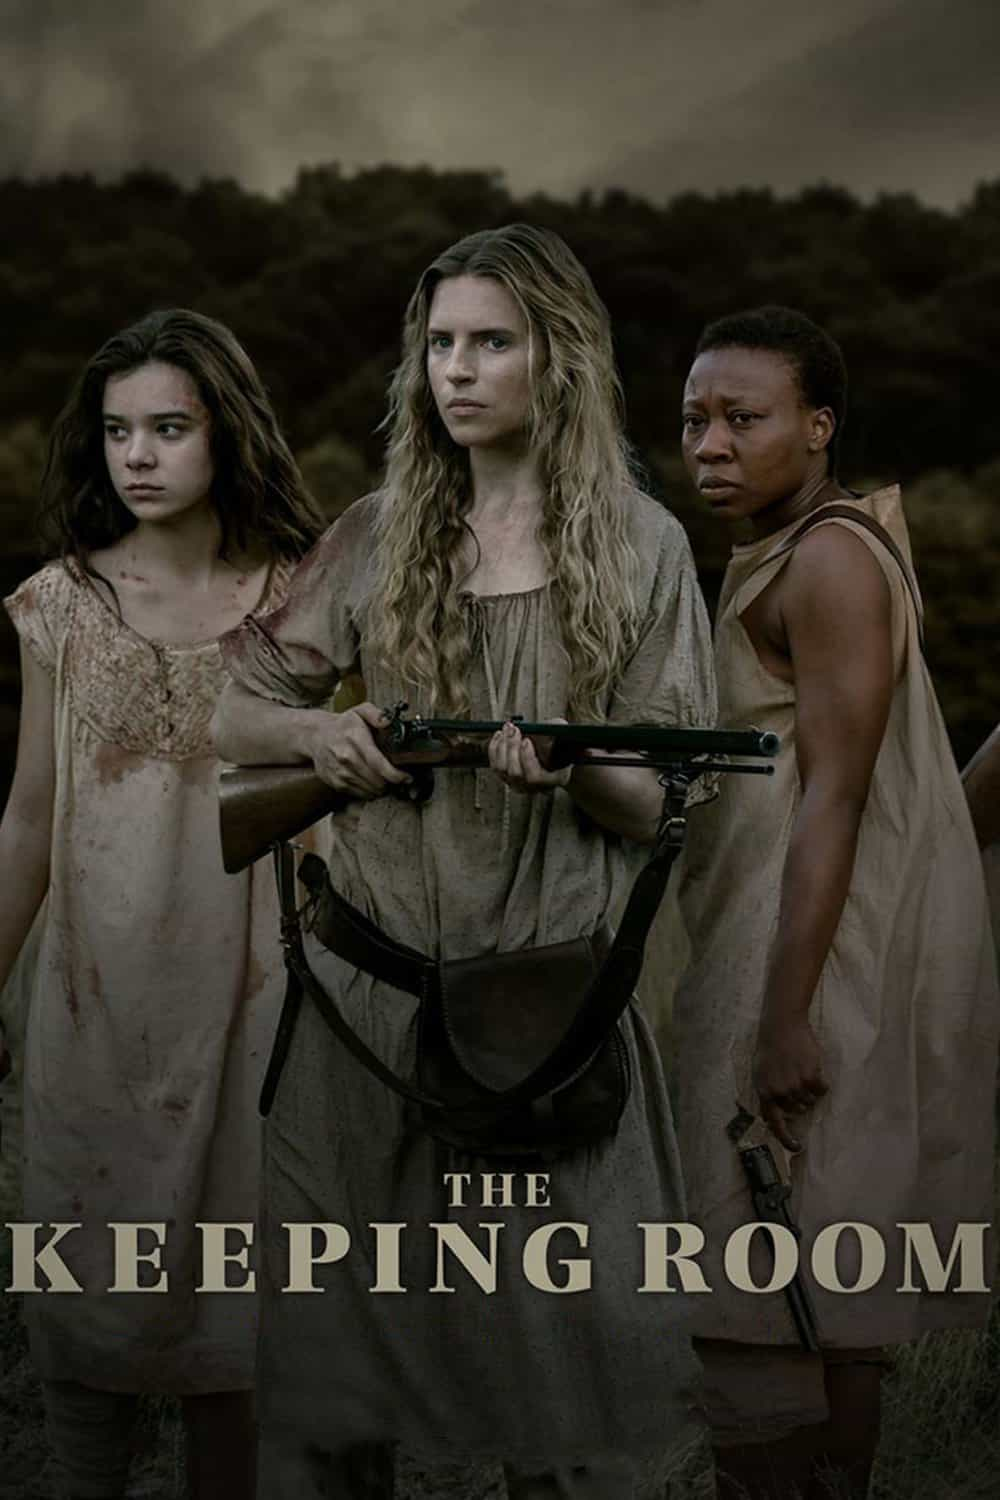 The Keeping Room, 2014